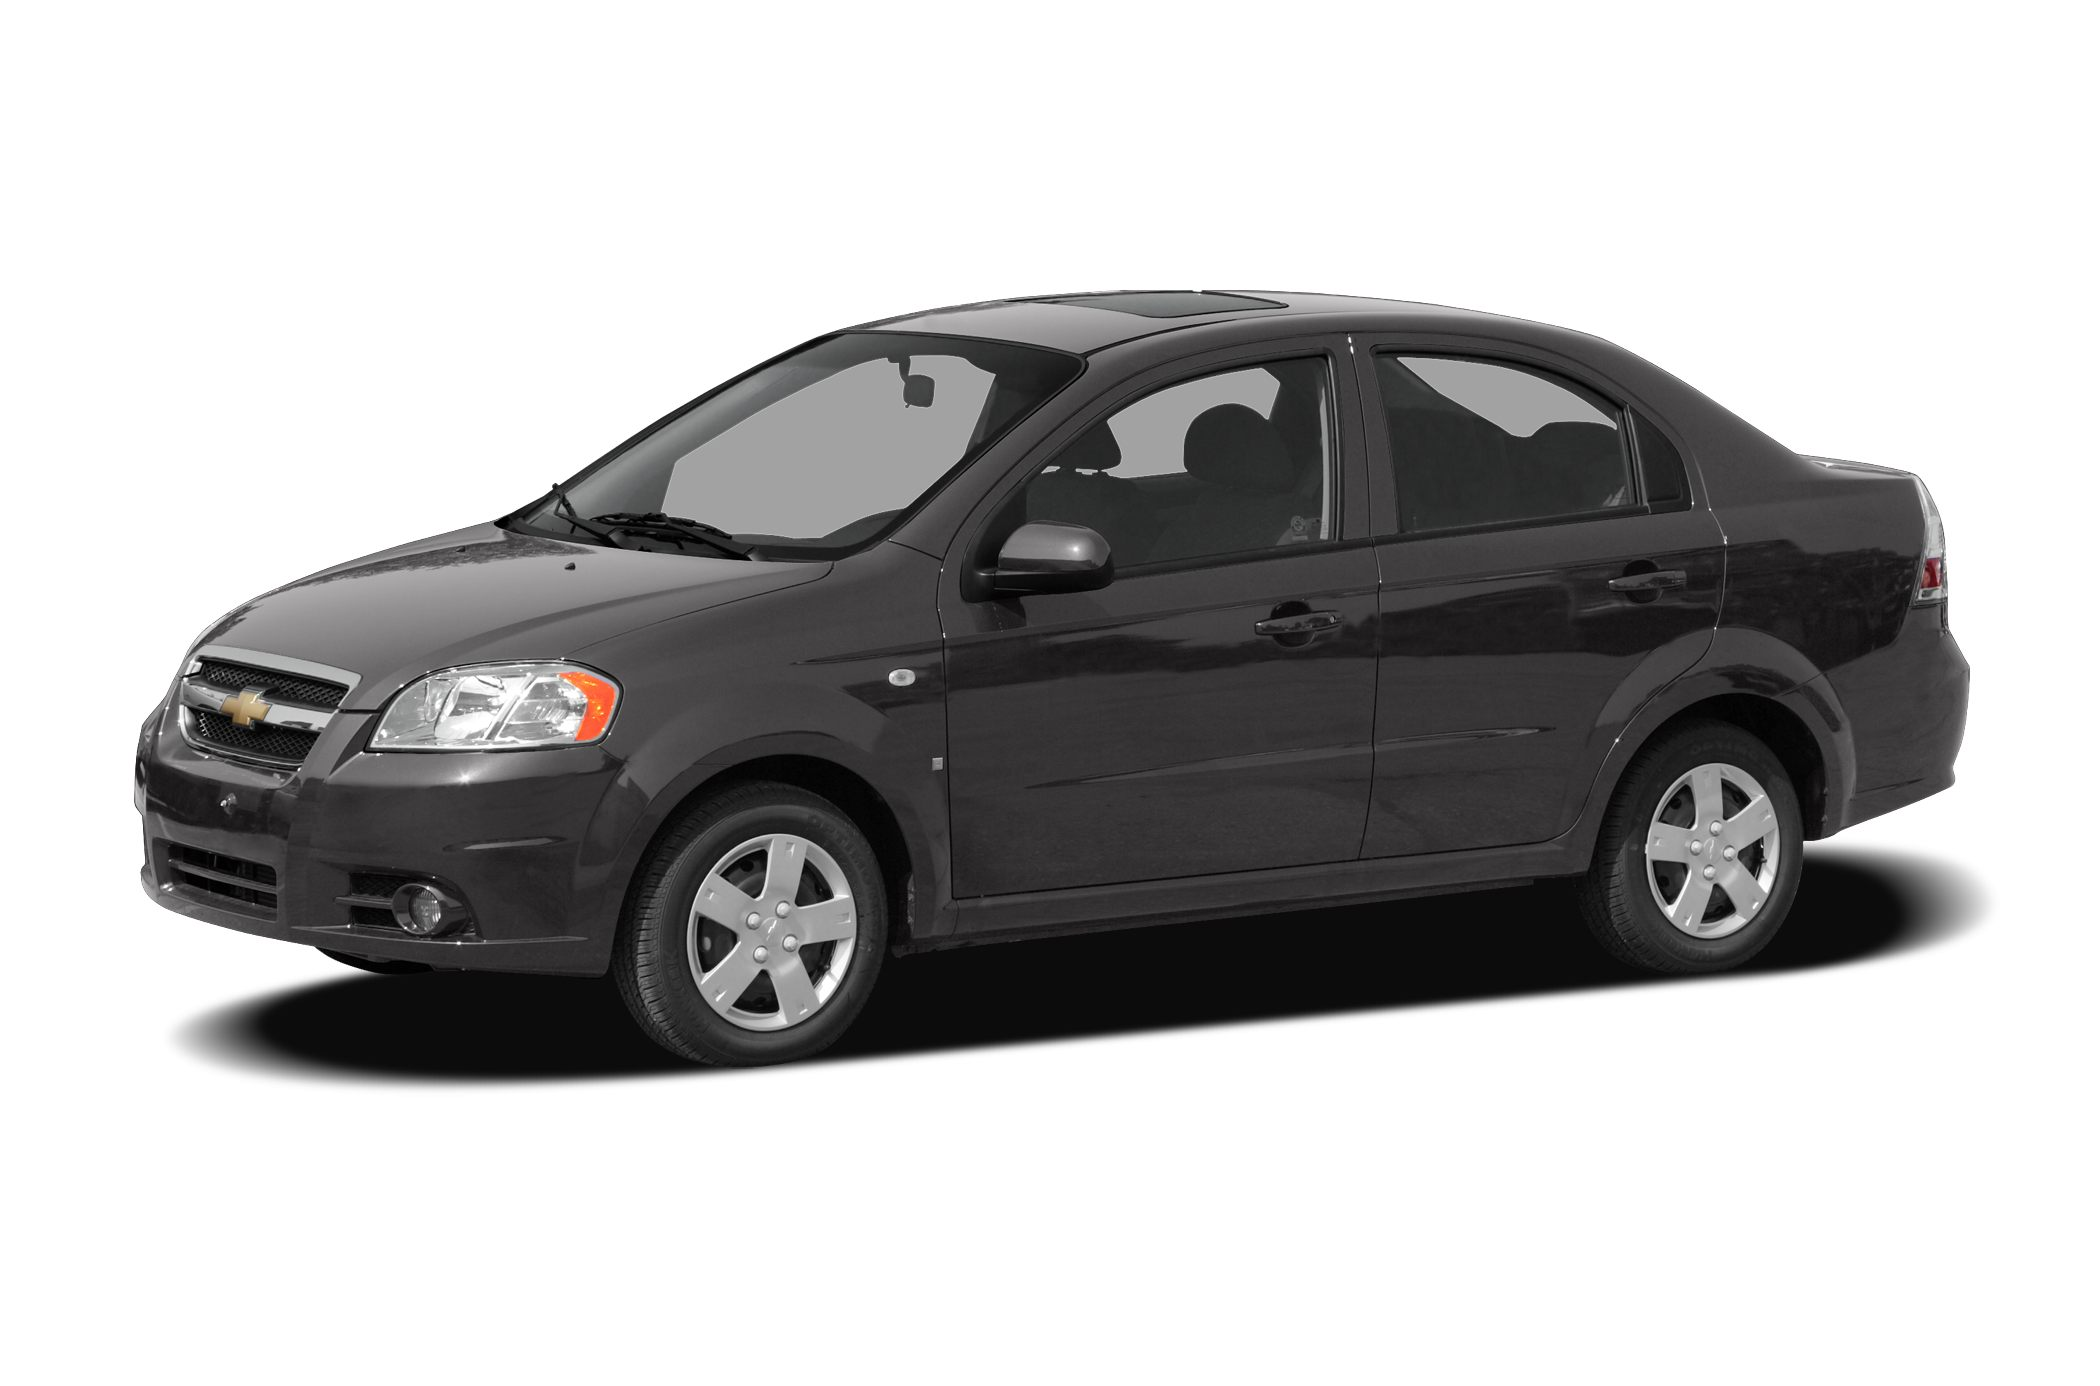 2008 Chevrolet Aveo LT Sedan for sale in McHenry for $1,498 with 205,897 miles